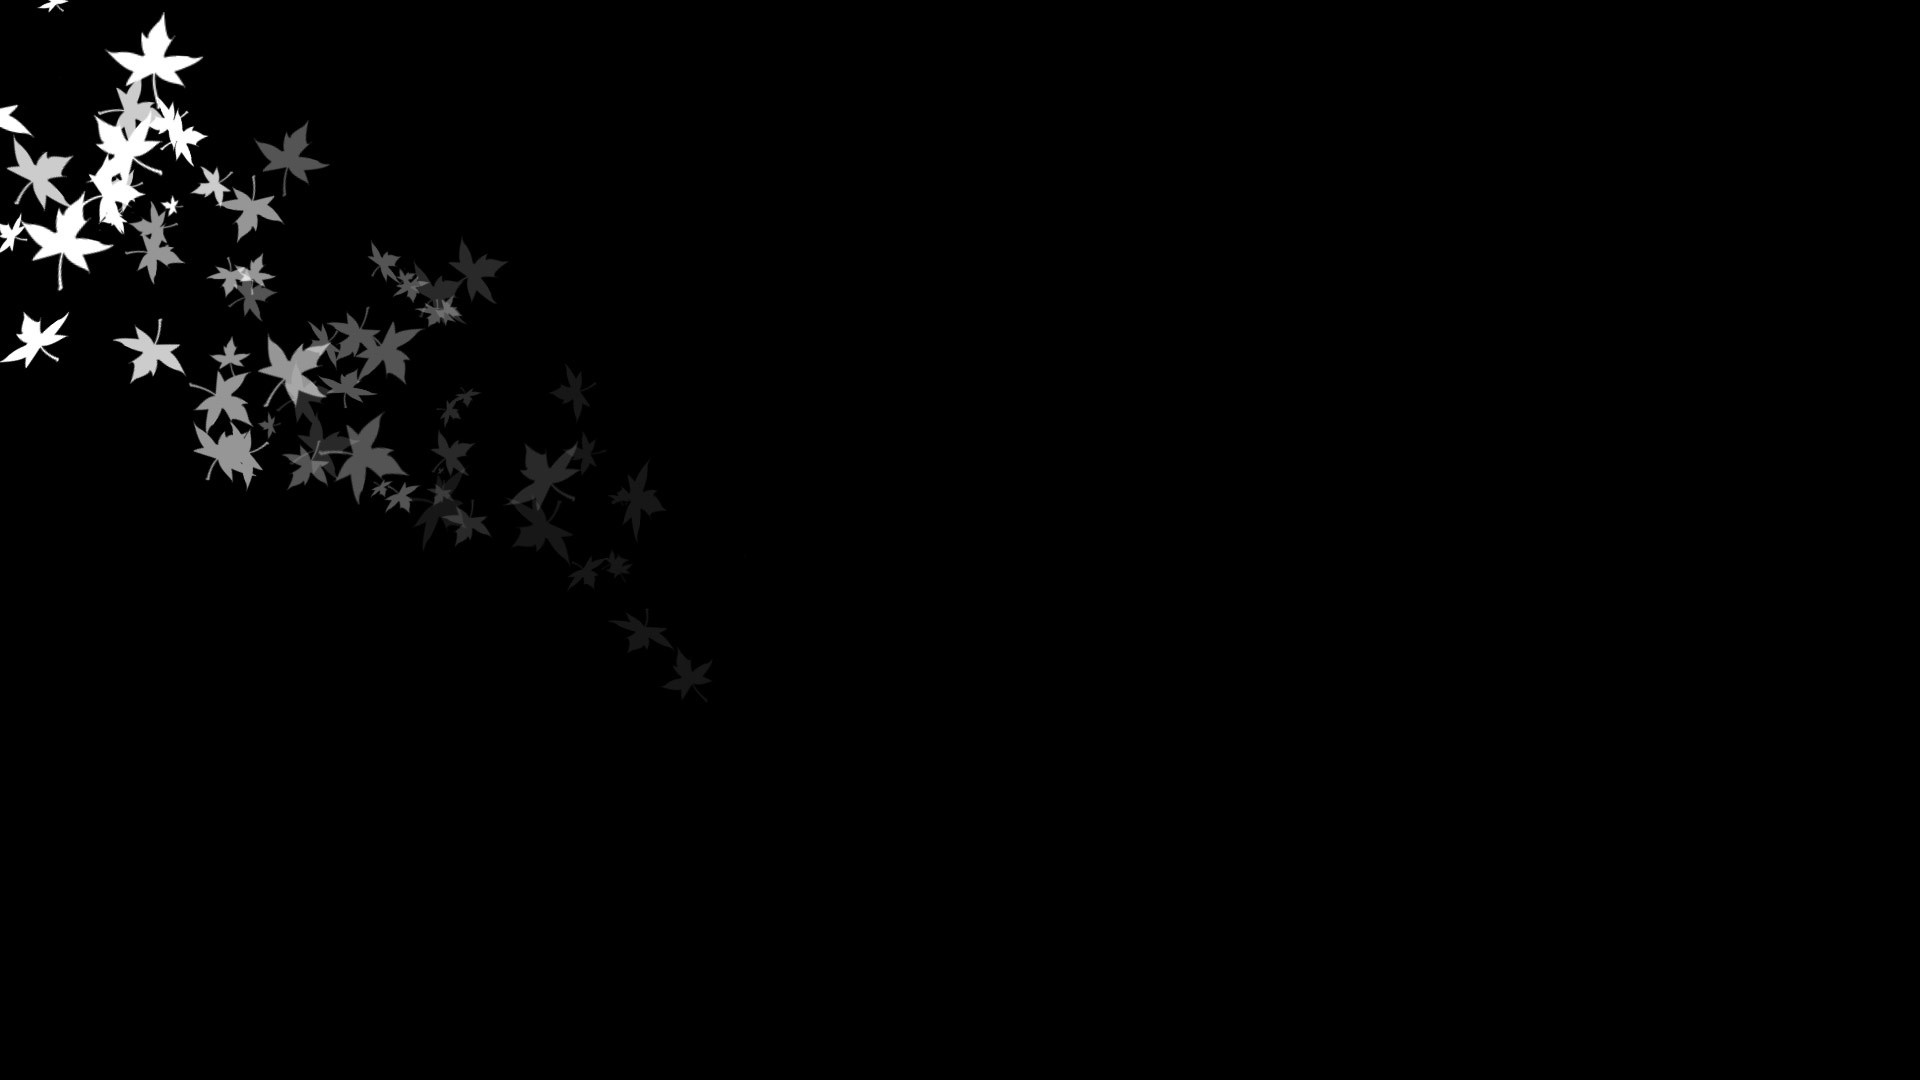 1920x1080 black wallpapers 4